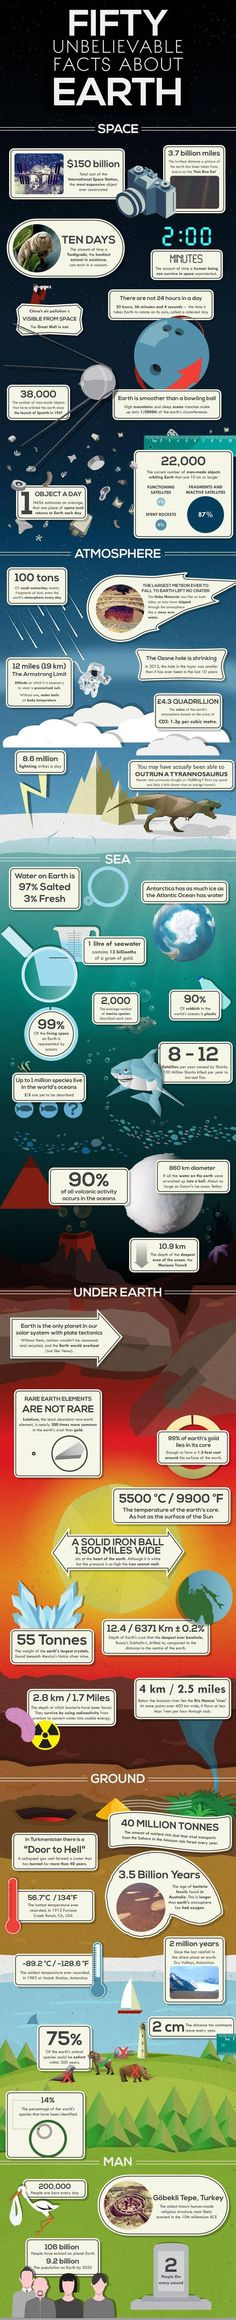 Fifty unbelievable facts about earth -infographic